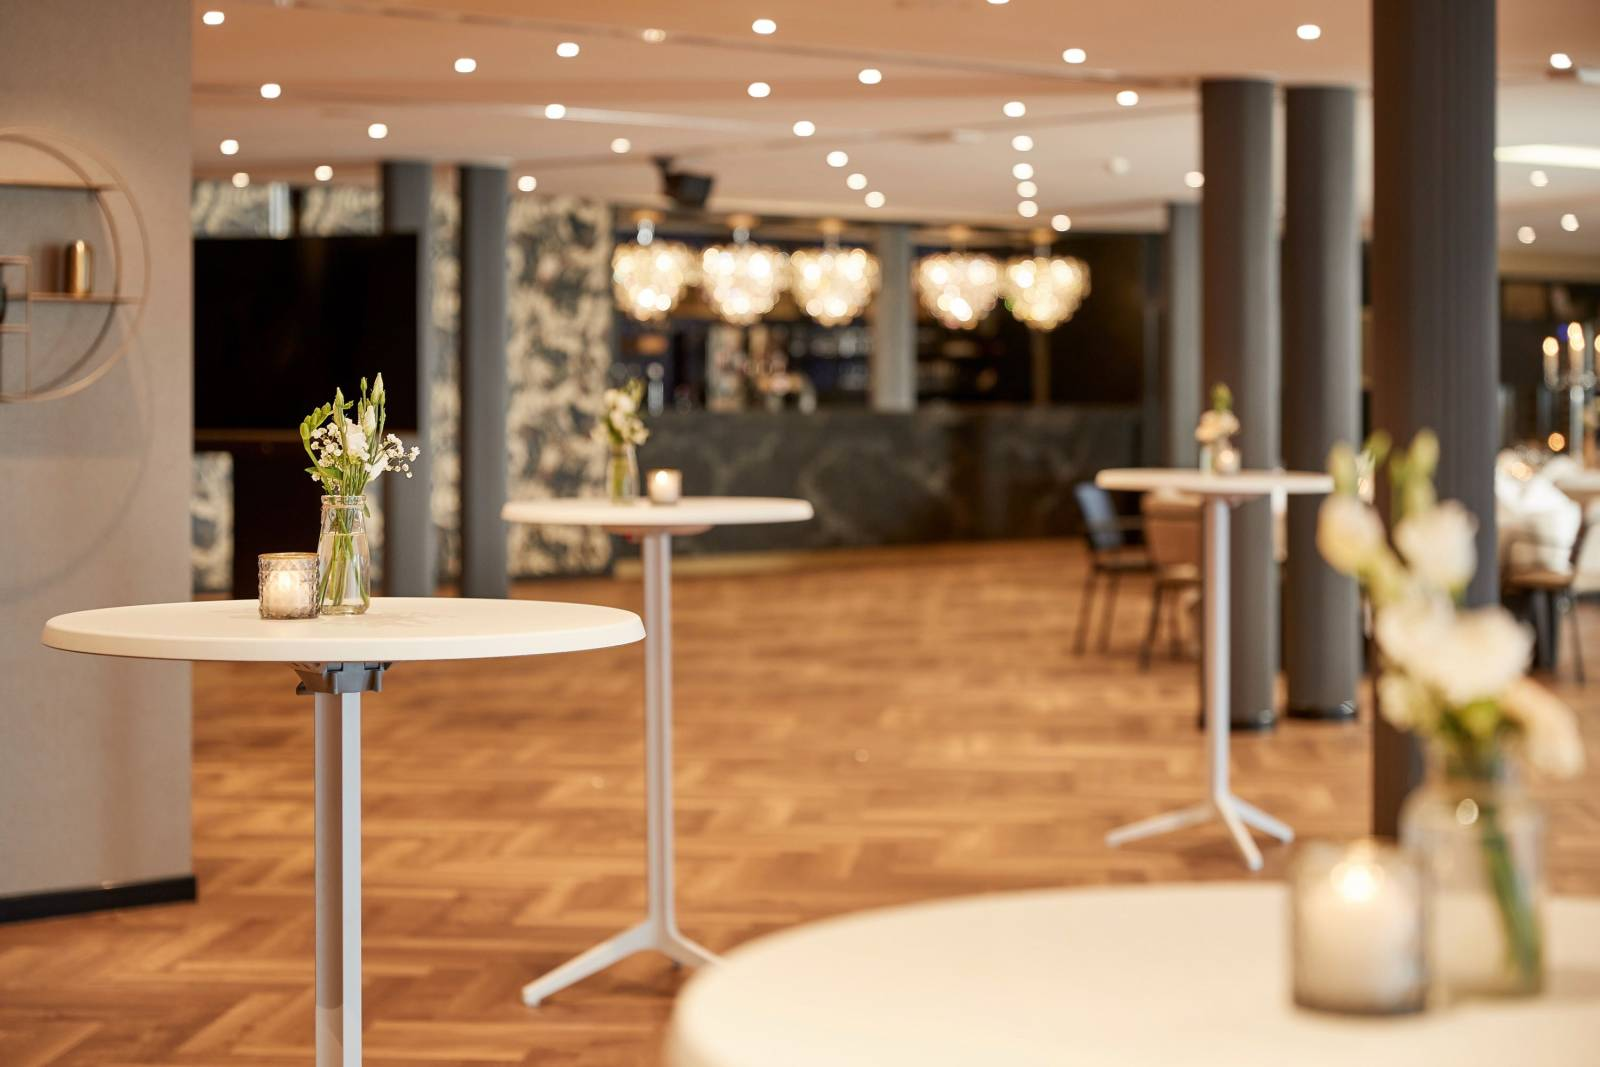 Van der Valk hotel Beveren - Feestzaal - Trouwzaal - House of Weddings - 10